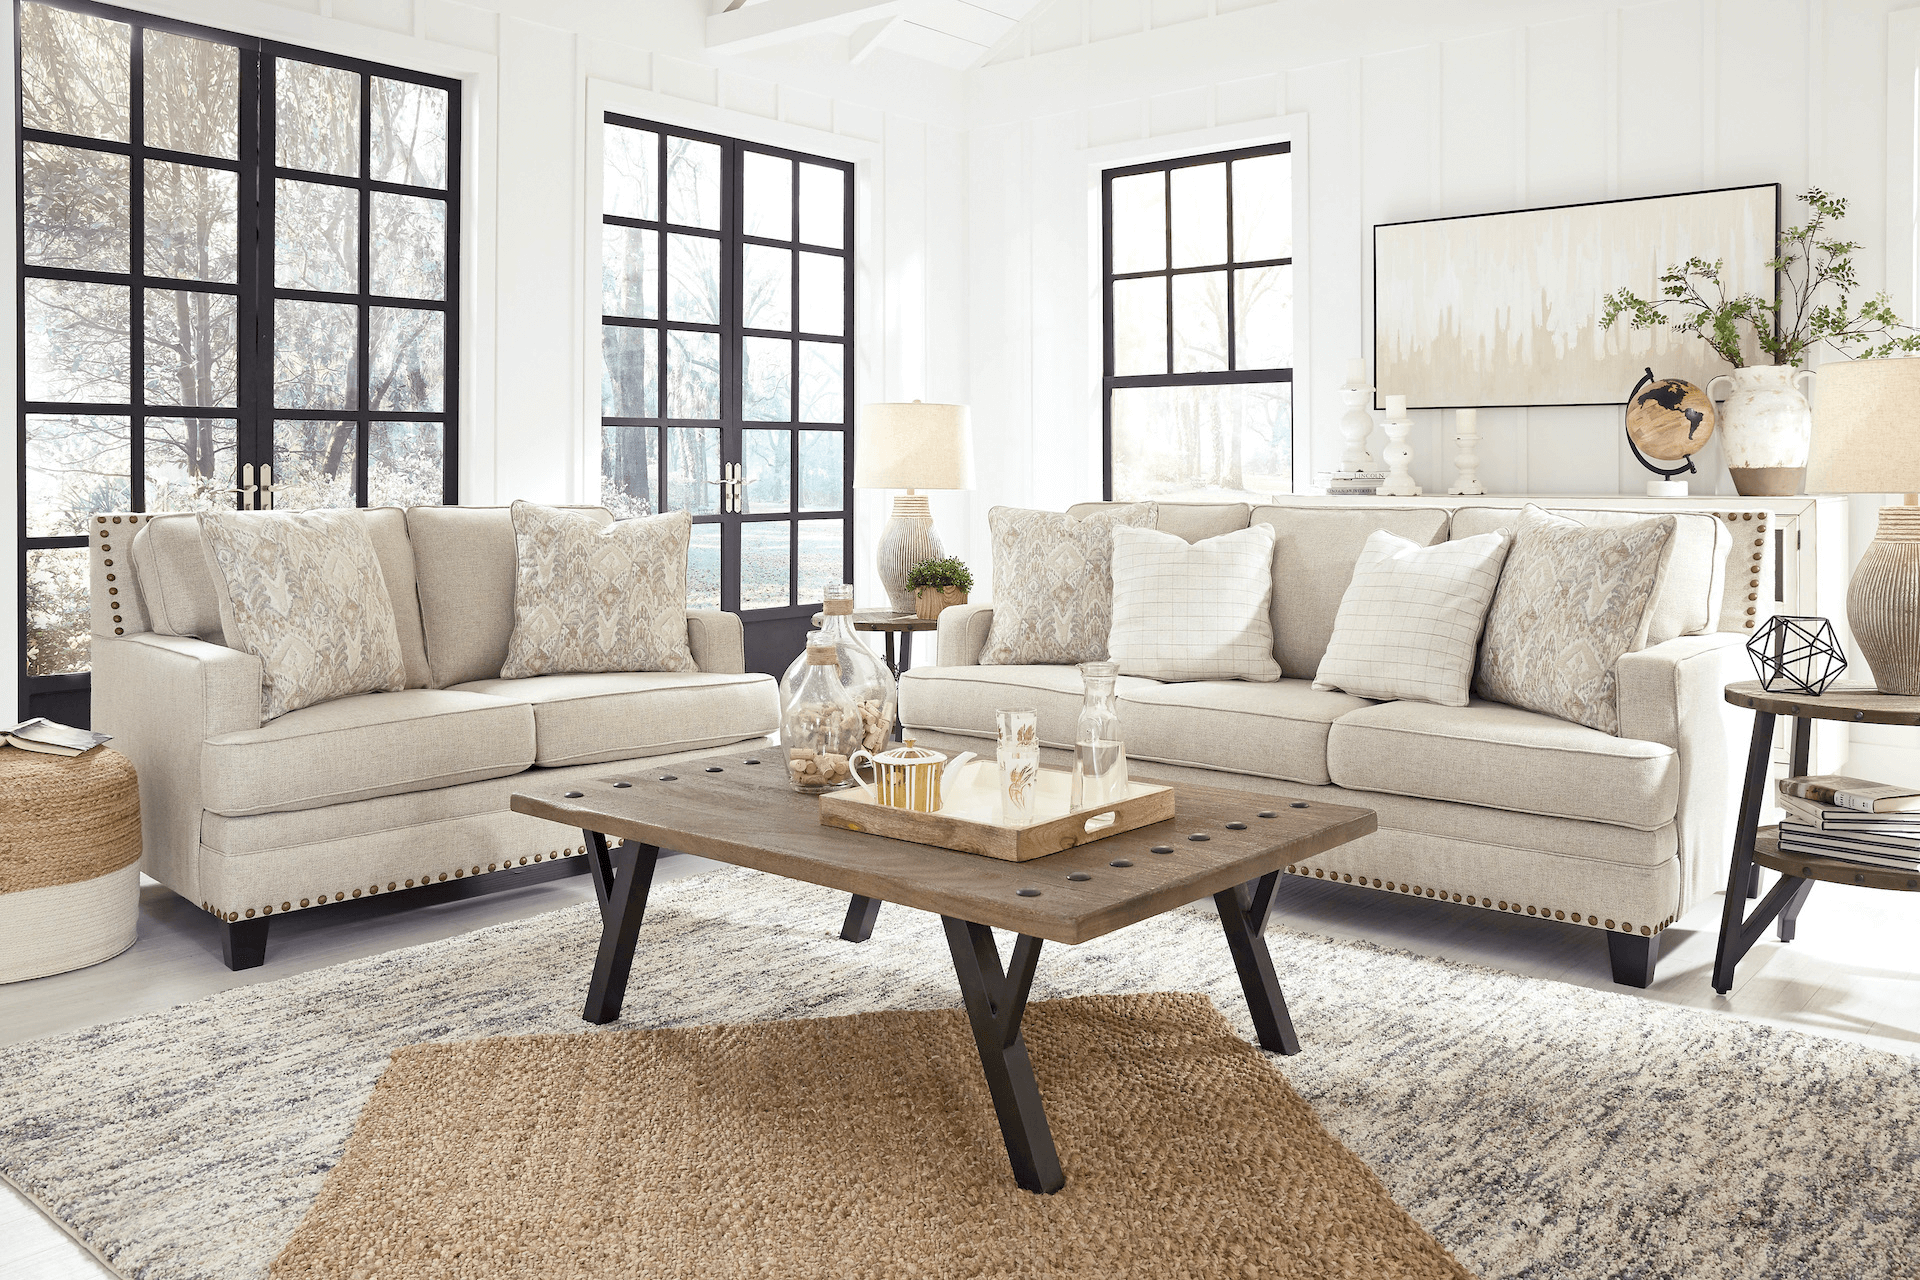 Atlantic_Furniture-Sofa_Sets-15602_T827_hi-res